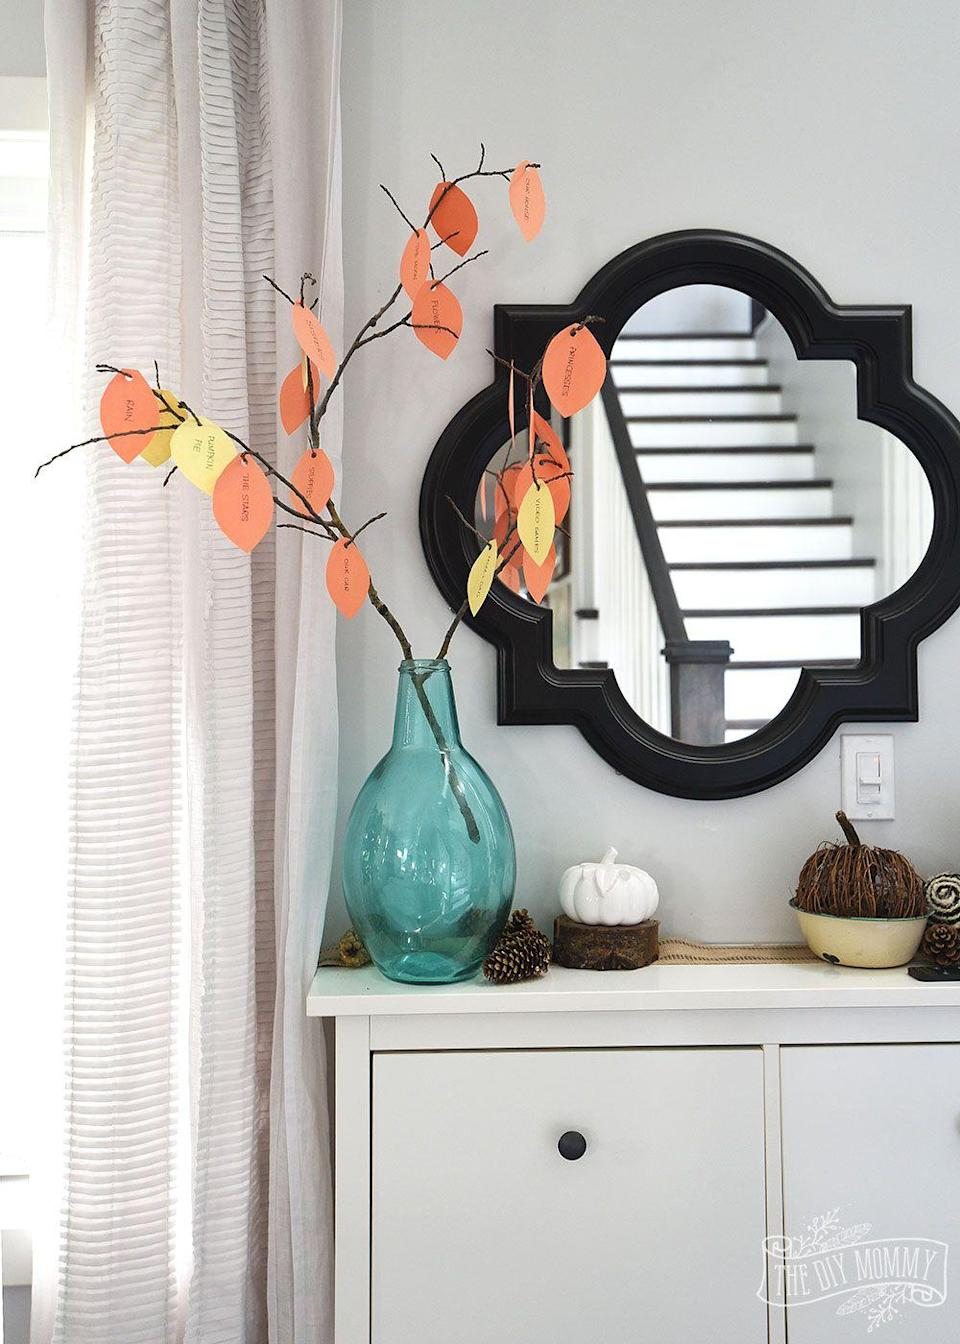 "<p>This one is simple enough to make with the kids during craft time, but is also great to display as a beautiful decor piece. All you'll need is a tree branch, some construction paper, a hole puncher and a glue gun — and of course a vase or pot to display your kids' handiwork with style.</p><p><em><a href=""https://thediymommy.com/make-a-thankful-tree-a-thankgiving-kids-craft/"" rel=""nofollow noopener"" target=""_blank"" data-ylk=""slk:Get the tutorial at The DIY Mommy »"" class=""link rapid-noclick-resp"">Get the tutorial at The DIY Mommy »</a></em></p><p><strong>RELATED: </strong><a href=""https://www.goodhousekeeping.com/holidays/thanksgiving-ideas/g2907/thanksgiving-kids-crafts/"" rel=""nofollow noopener"" target=""_blank"" data-ylk=""slk:36 Easy Thanksgiving Crafts for Kids That'll Make Their Holiday More Fun"" class=""link rapid-noclick-resp"">36 Easy Thanksgiving Crafts for Kids That'll Make Their Holiday More Fun</a></p>"